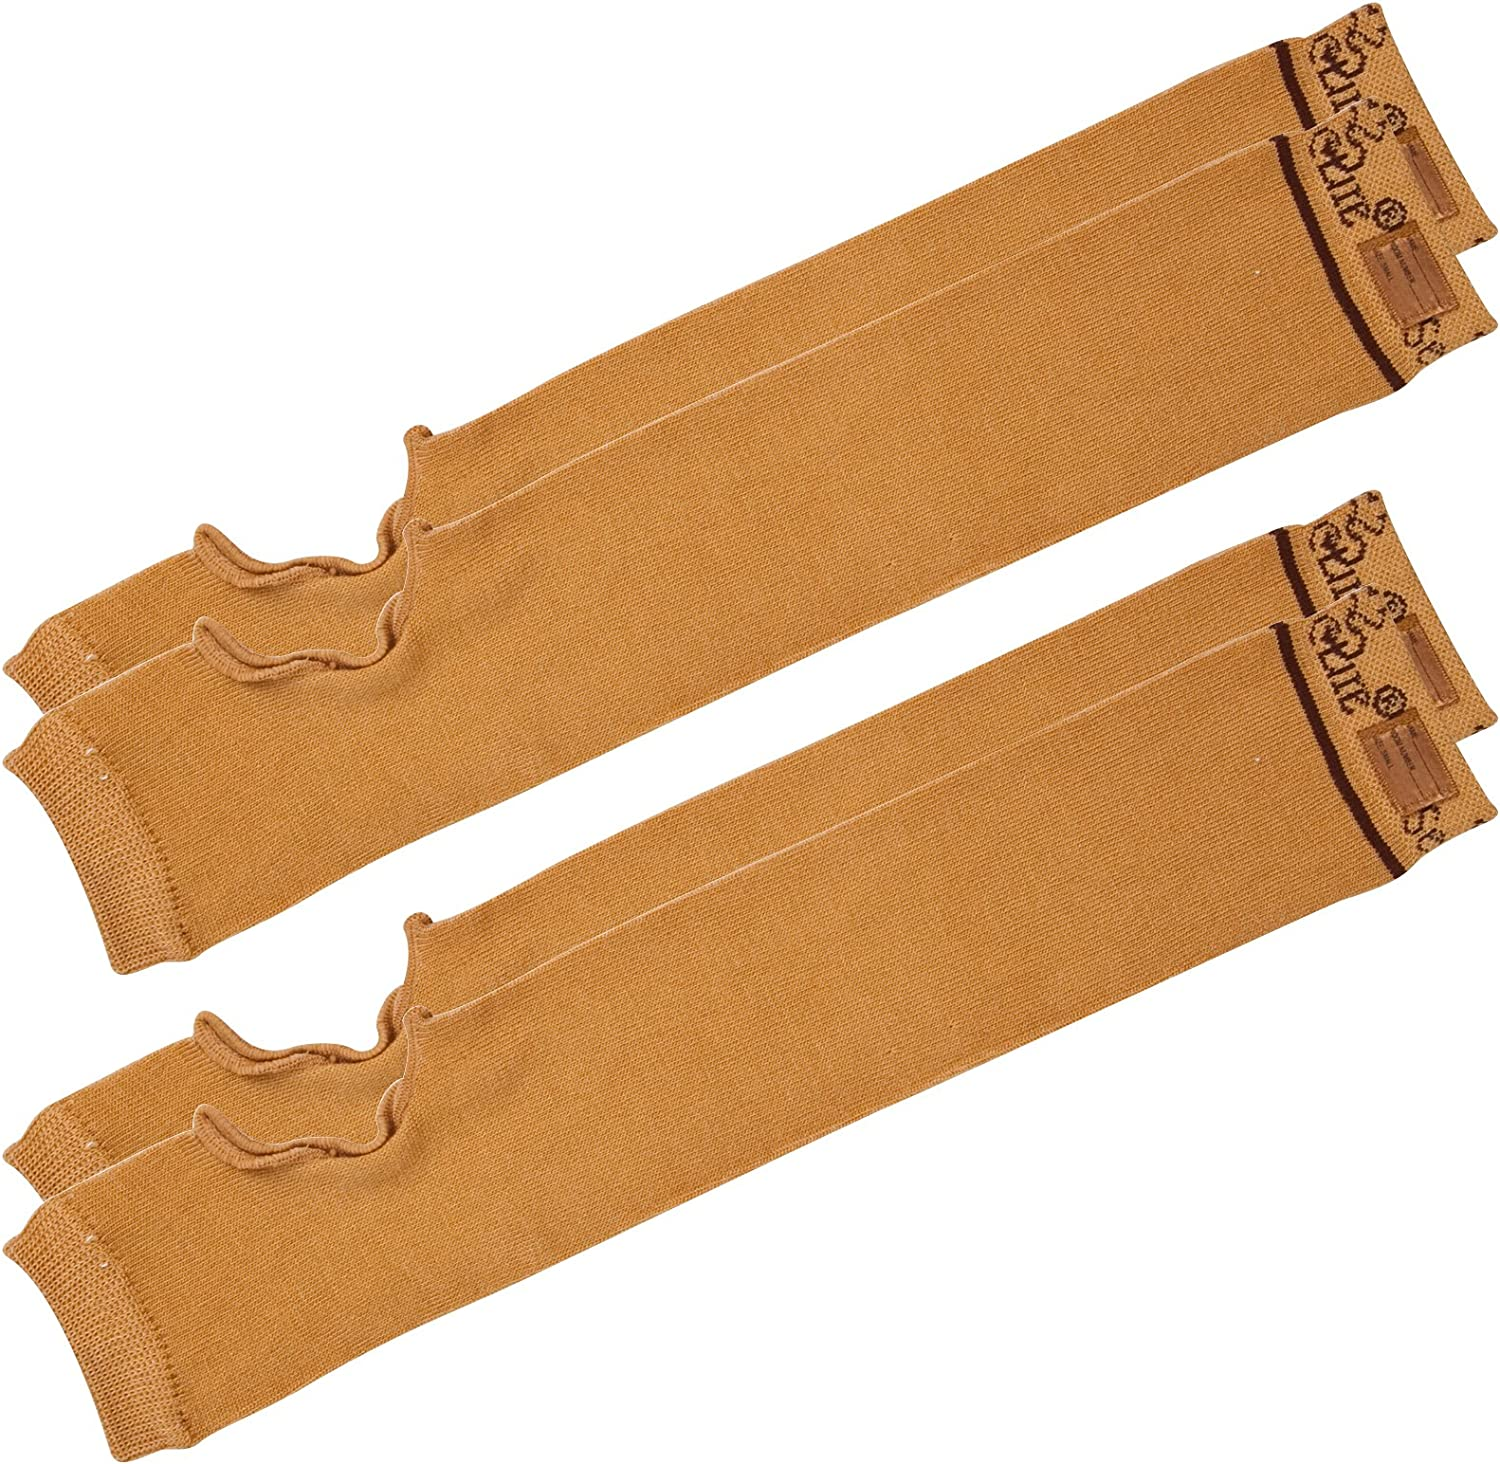 "SecureSleeves (2 Pairs) Geri Sleeves for Arms, Brown - Protects Sensitive Skin from Tears & Bruising (Small: 14.5""-15"" x 3.0"")"